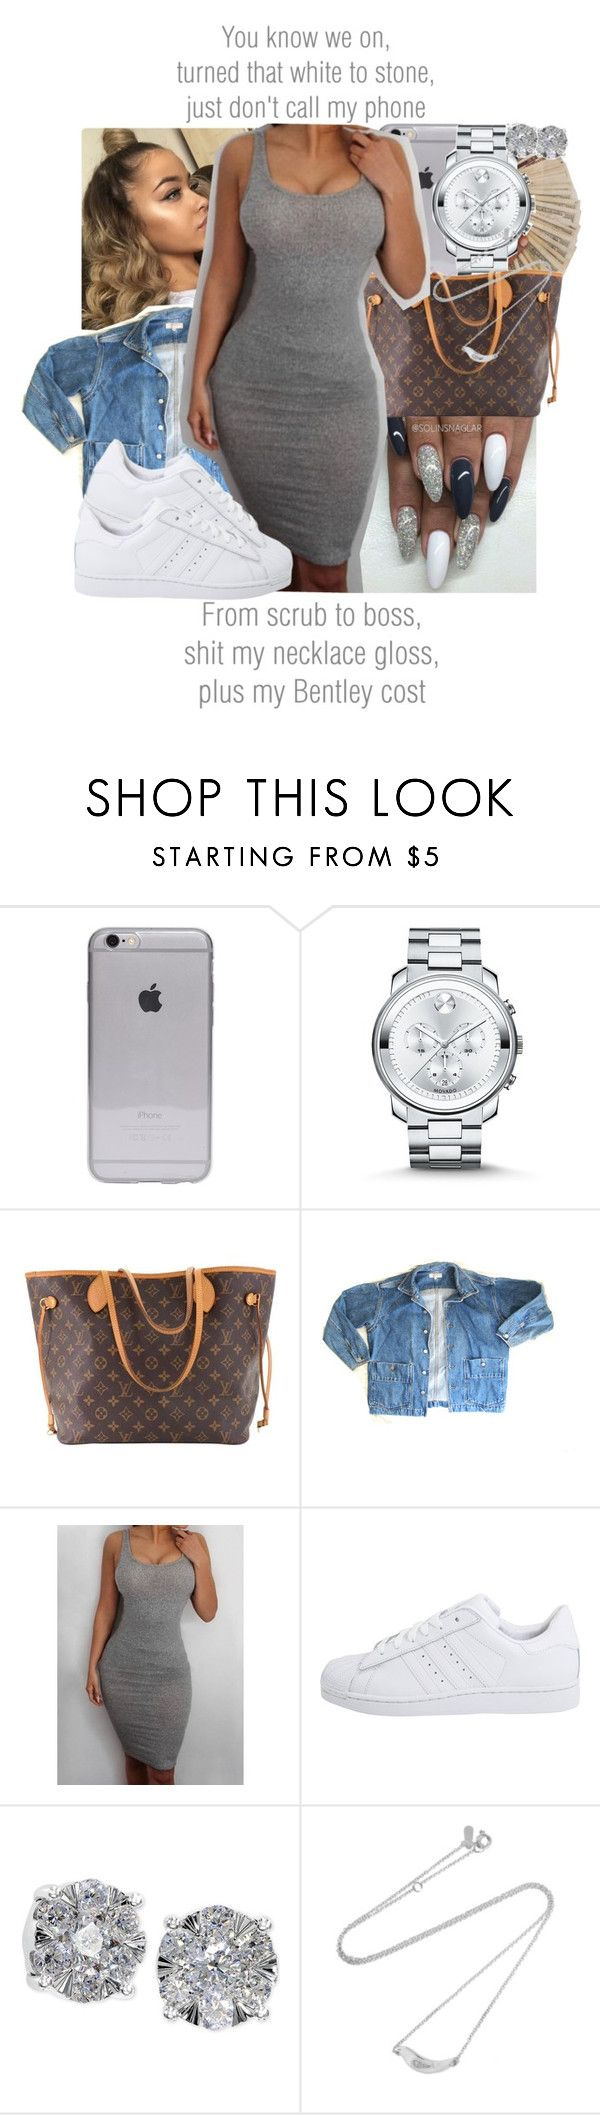 """By Any Means x Schoolboy Q"" by juicyums ❤ liked on Polyvore featuring Movado, Louis Vuitton, GUESS, adidas Originals, Effy Jewelry and Adina Reyter"